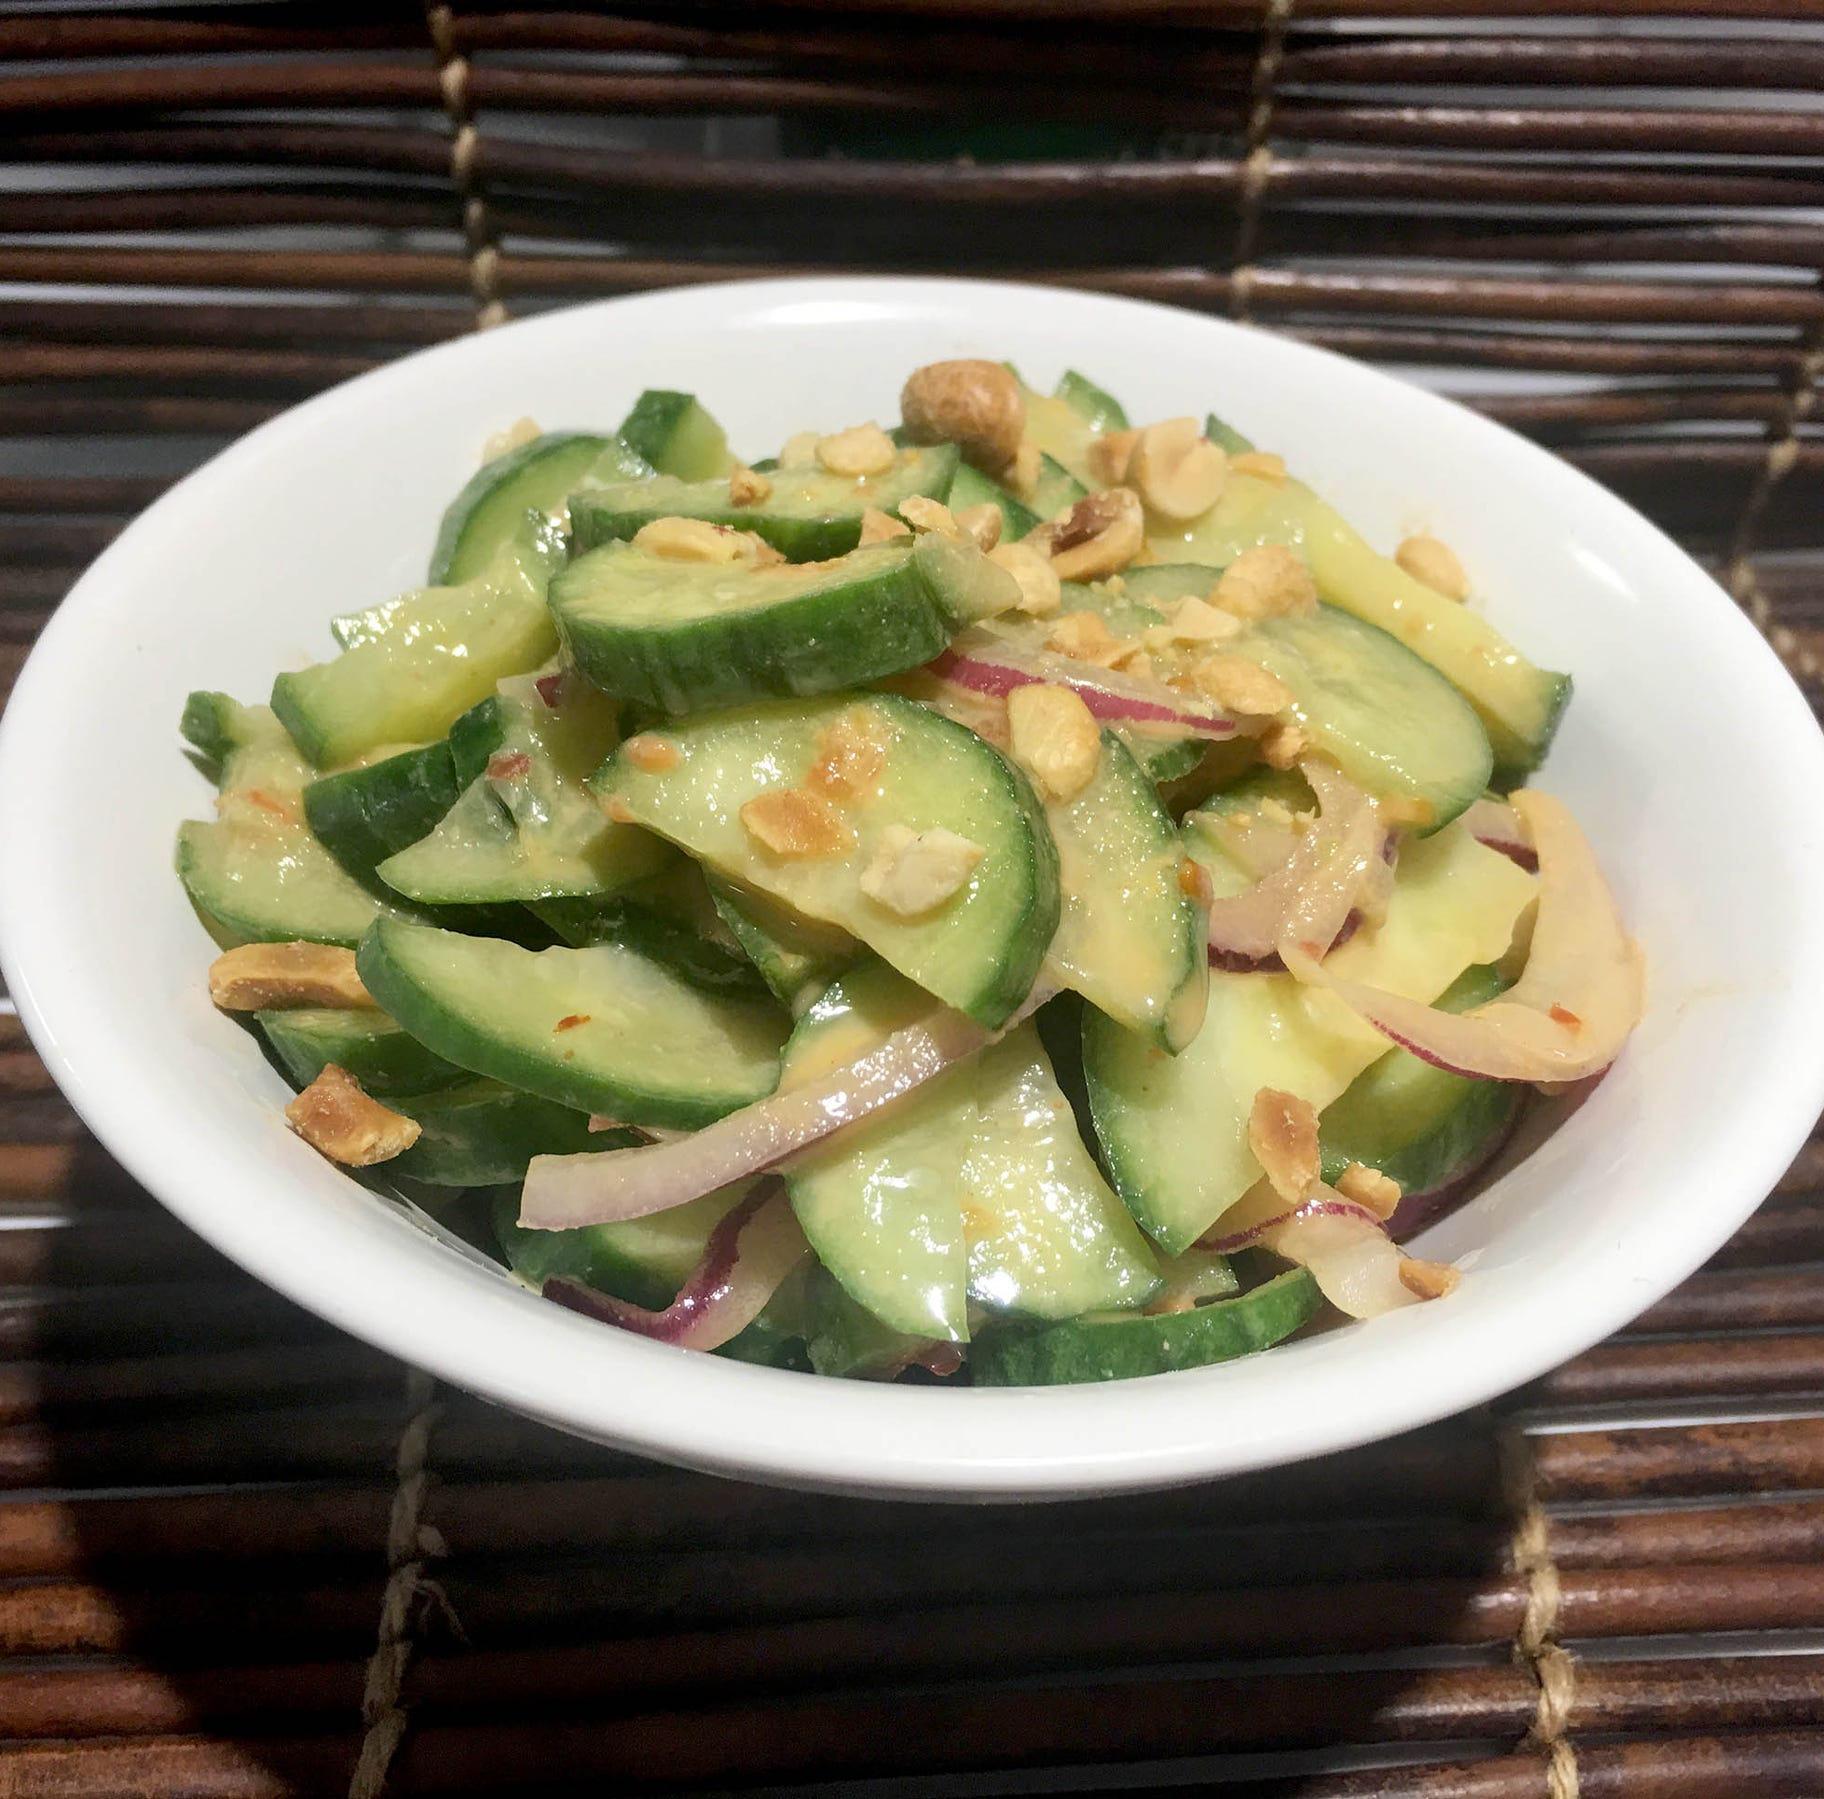 Spicy peanut butter dressing is a good match for cucumbers